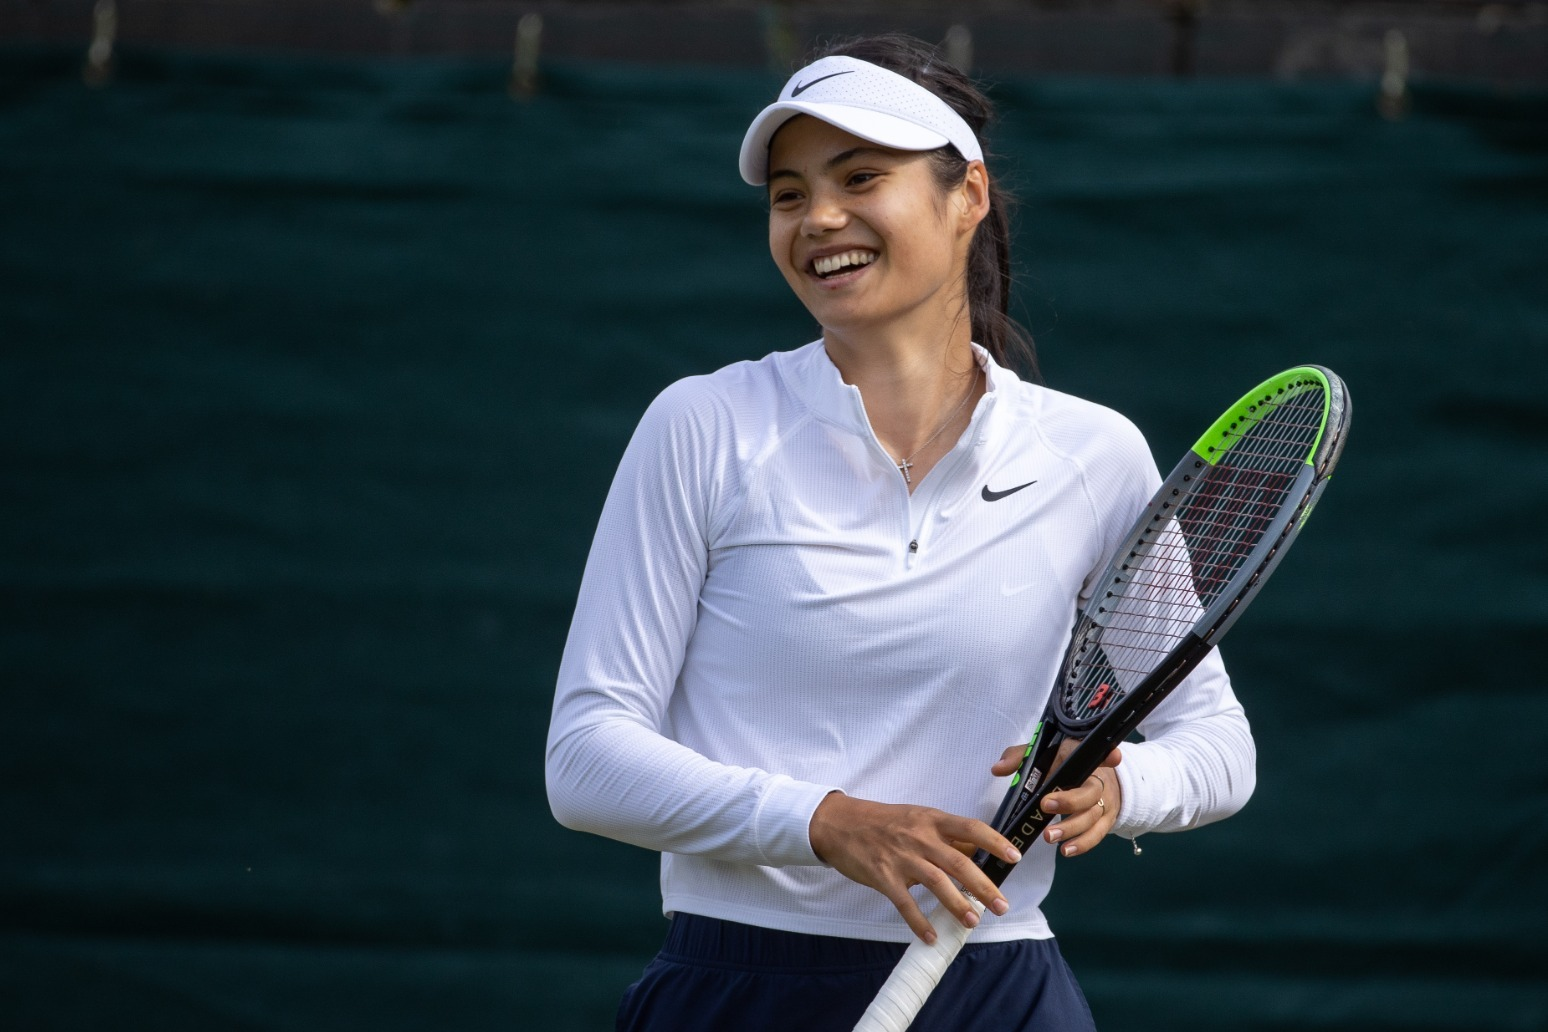 Emma Raducanu\'s Wimbledon run comes to a sad end after she suffers breathing difficulties